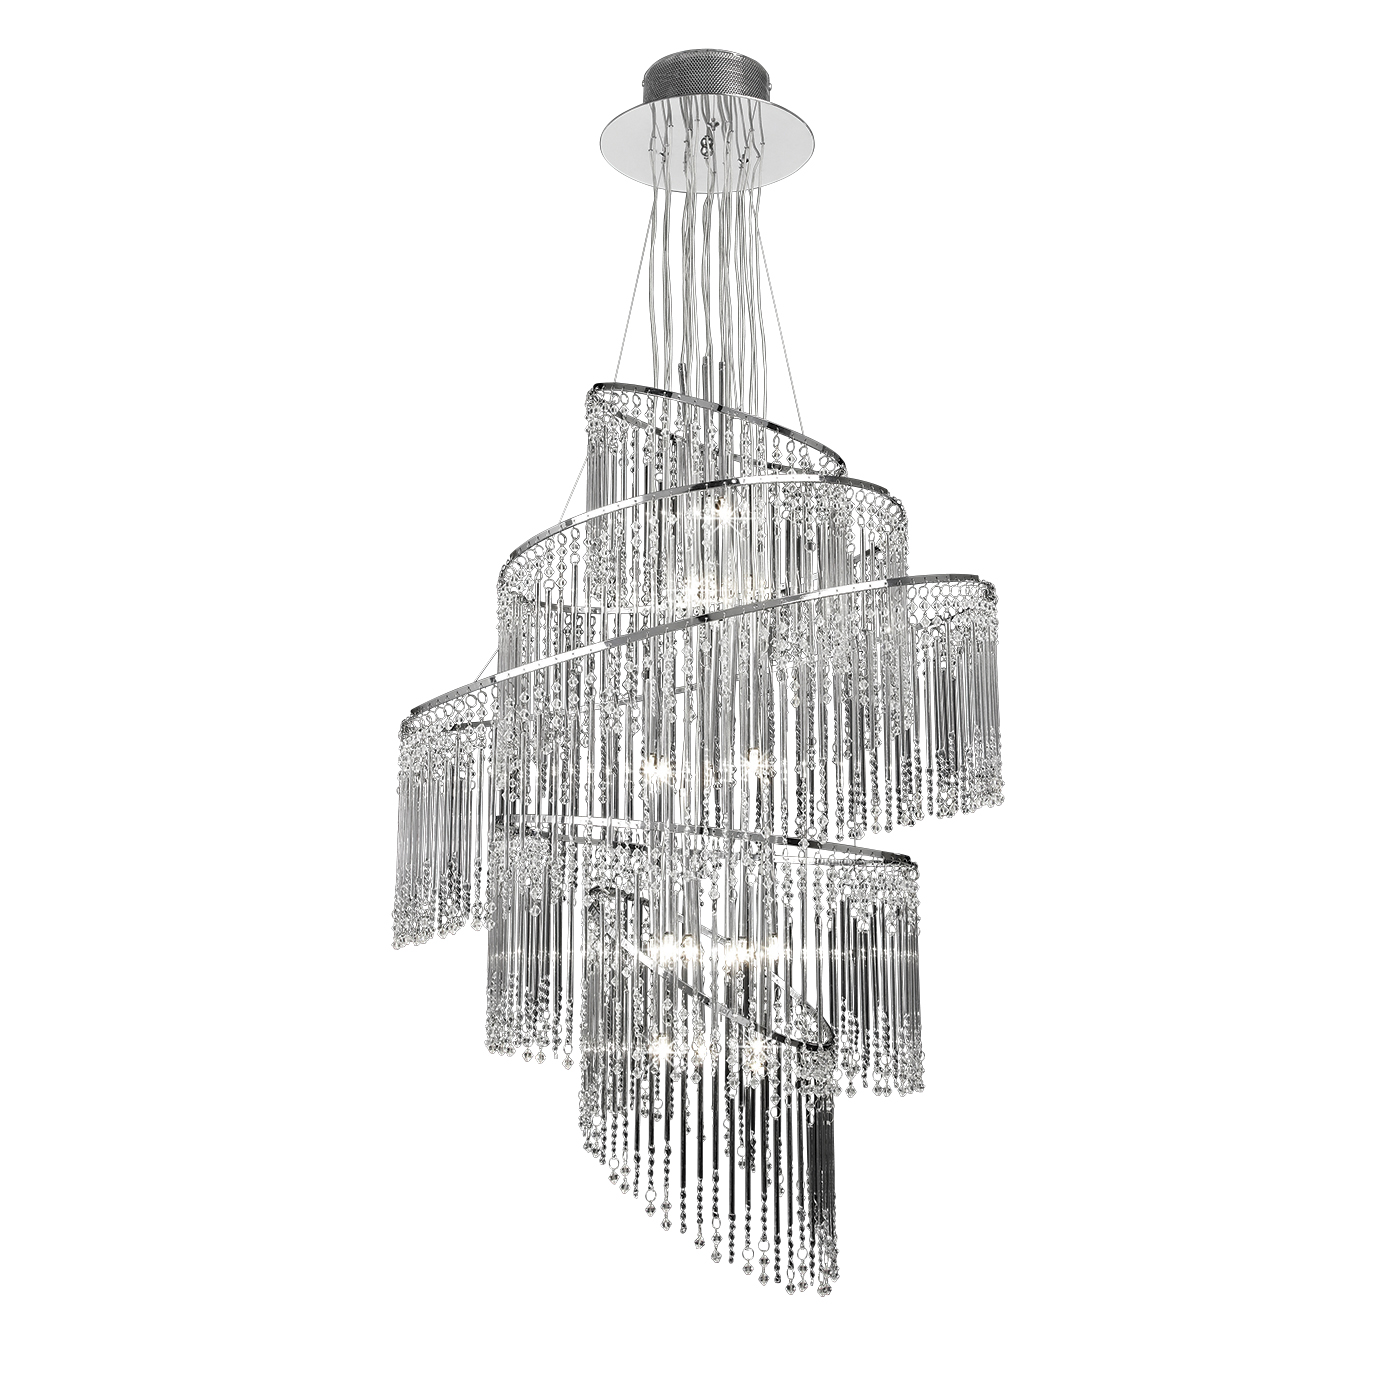 Endon Camille chandelier 24x 10W Clear glass & chrome effect plate